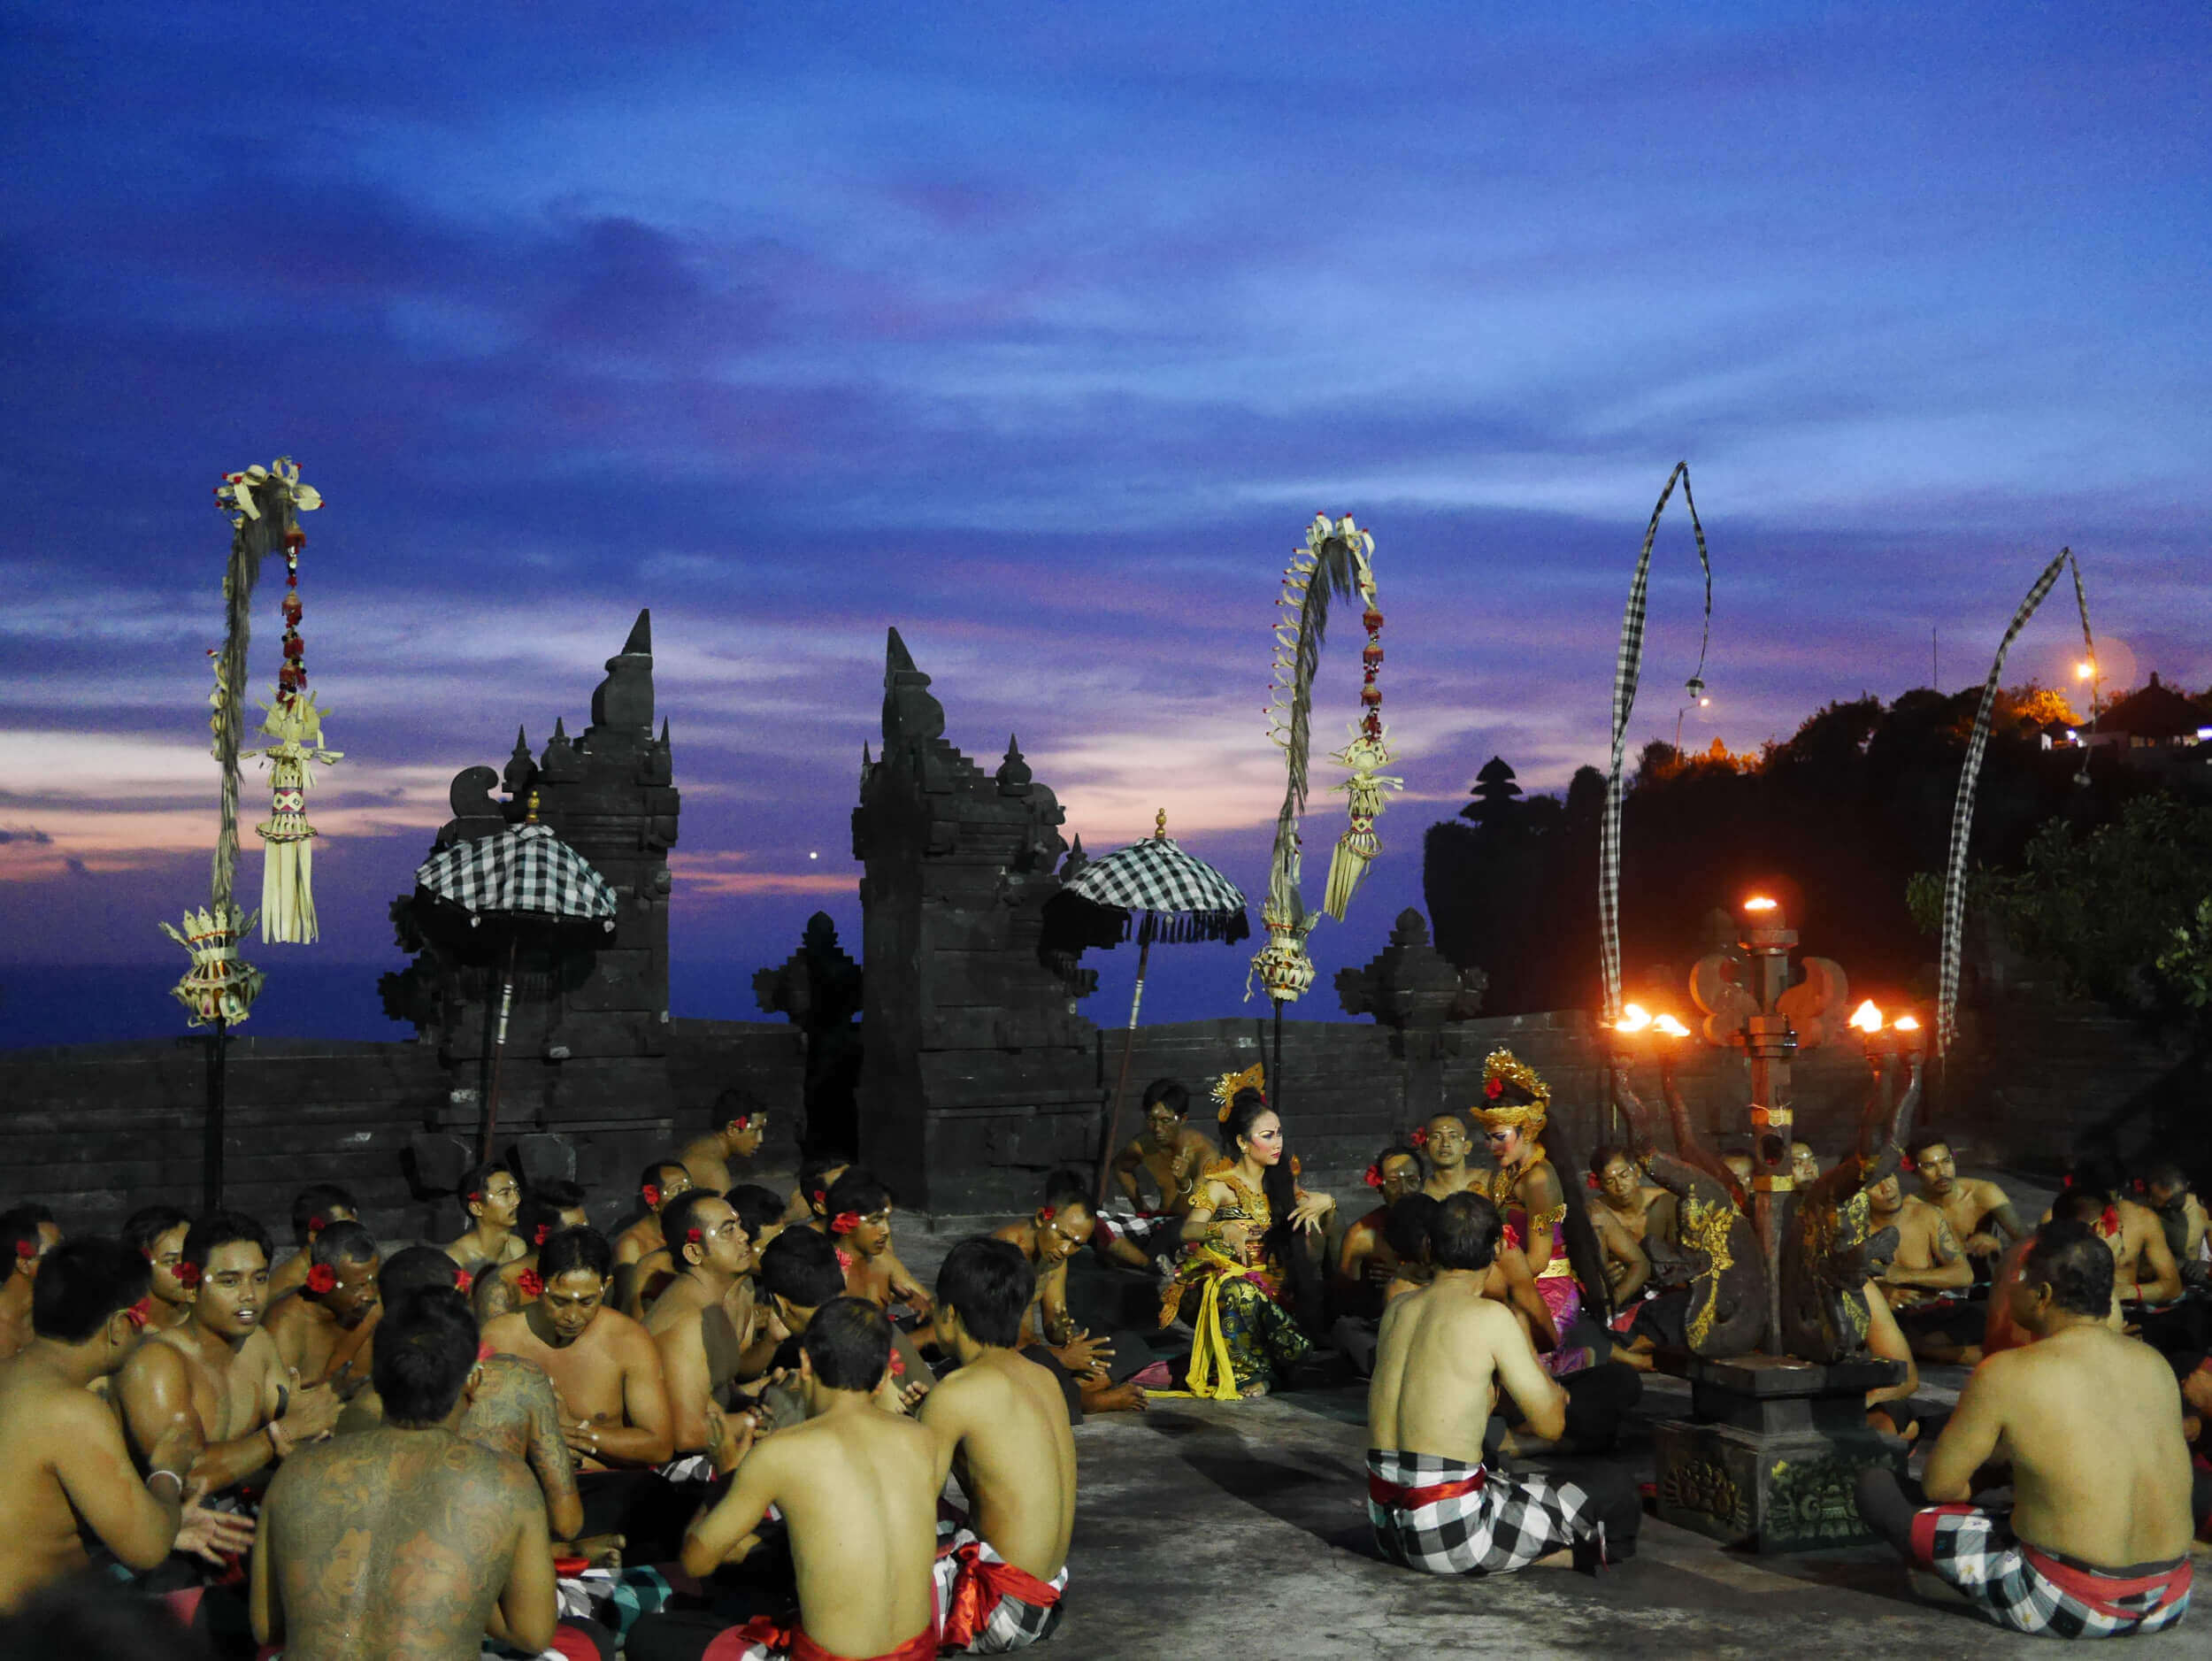 Kecak Dance and Sunset at Uluwatu Temple | Bali, Indonesia | Photo: Sutiknyo